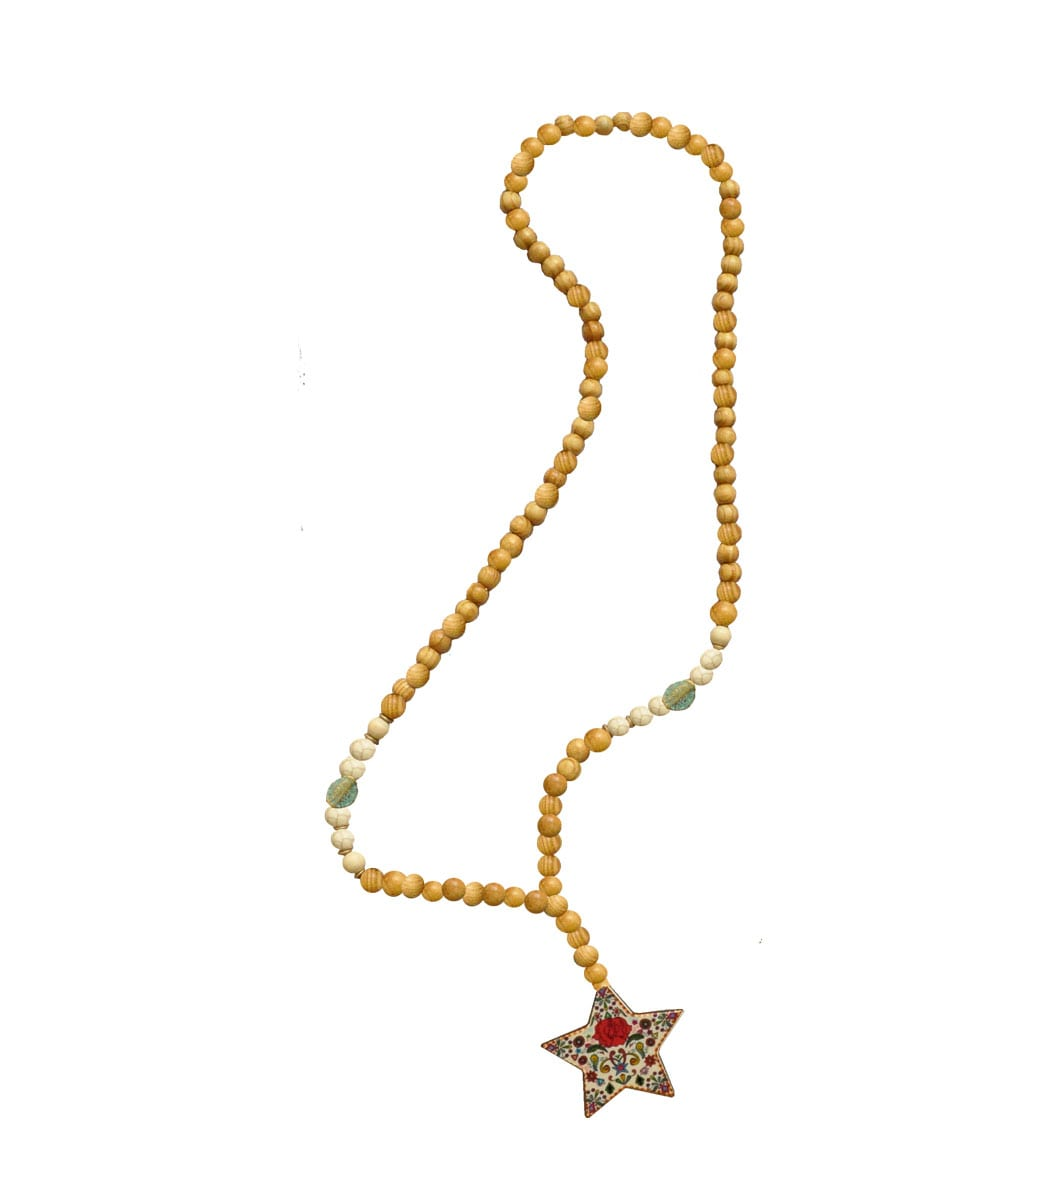 Giant wooden star necklace